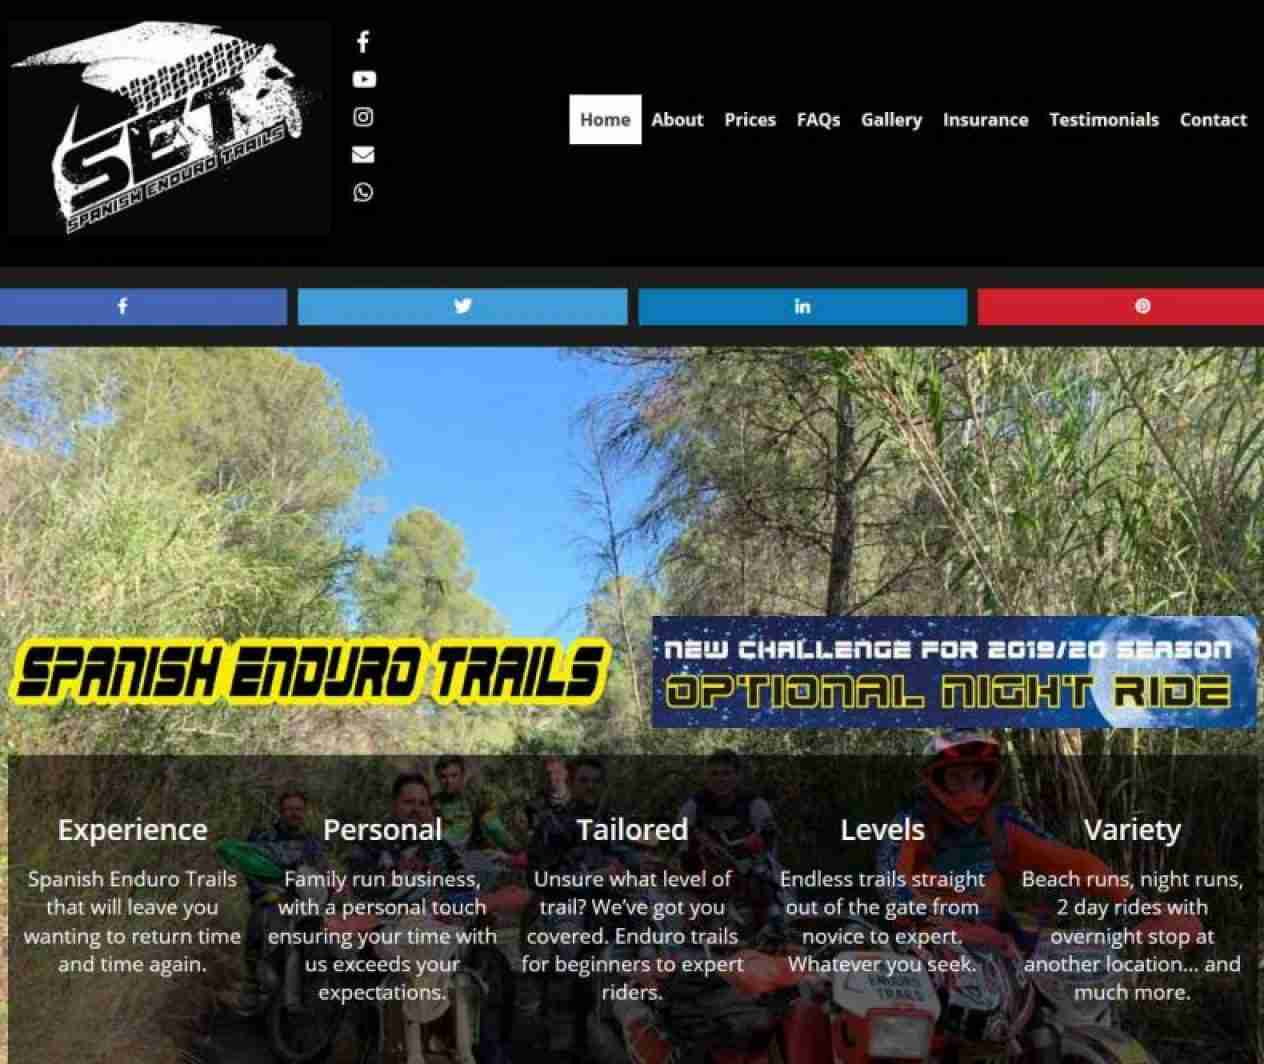 Spanish Enduro Trails